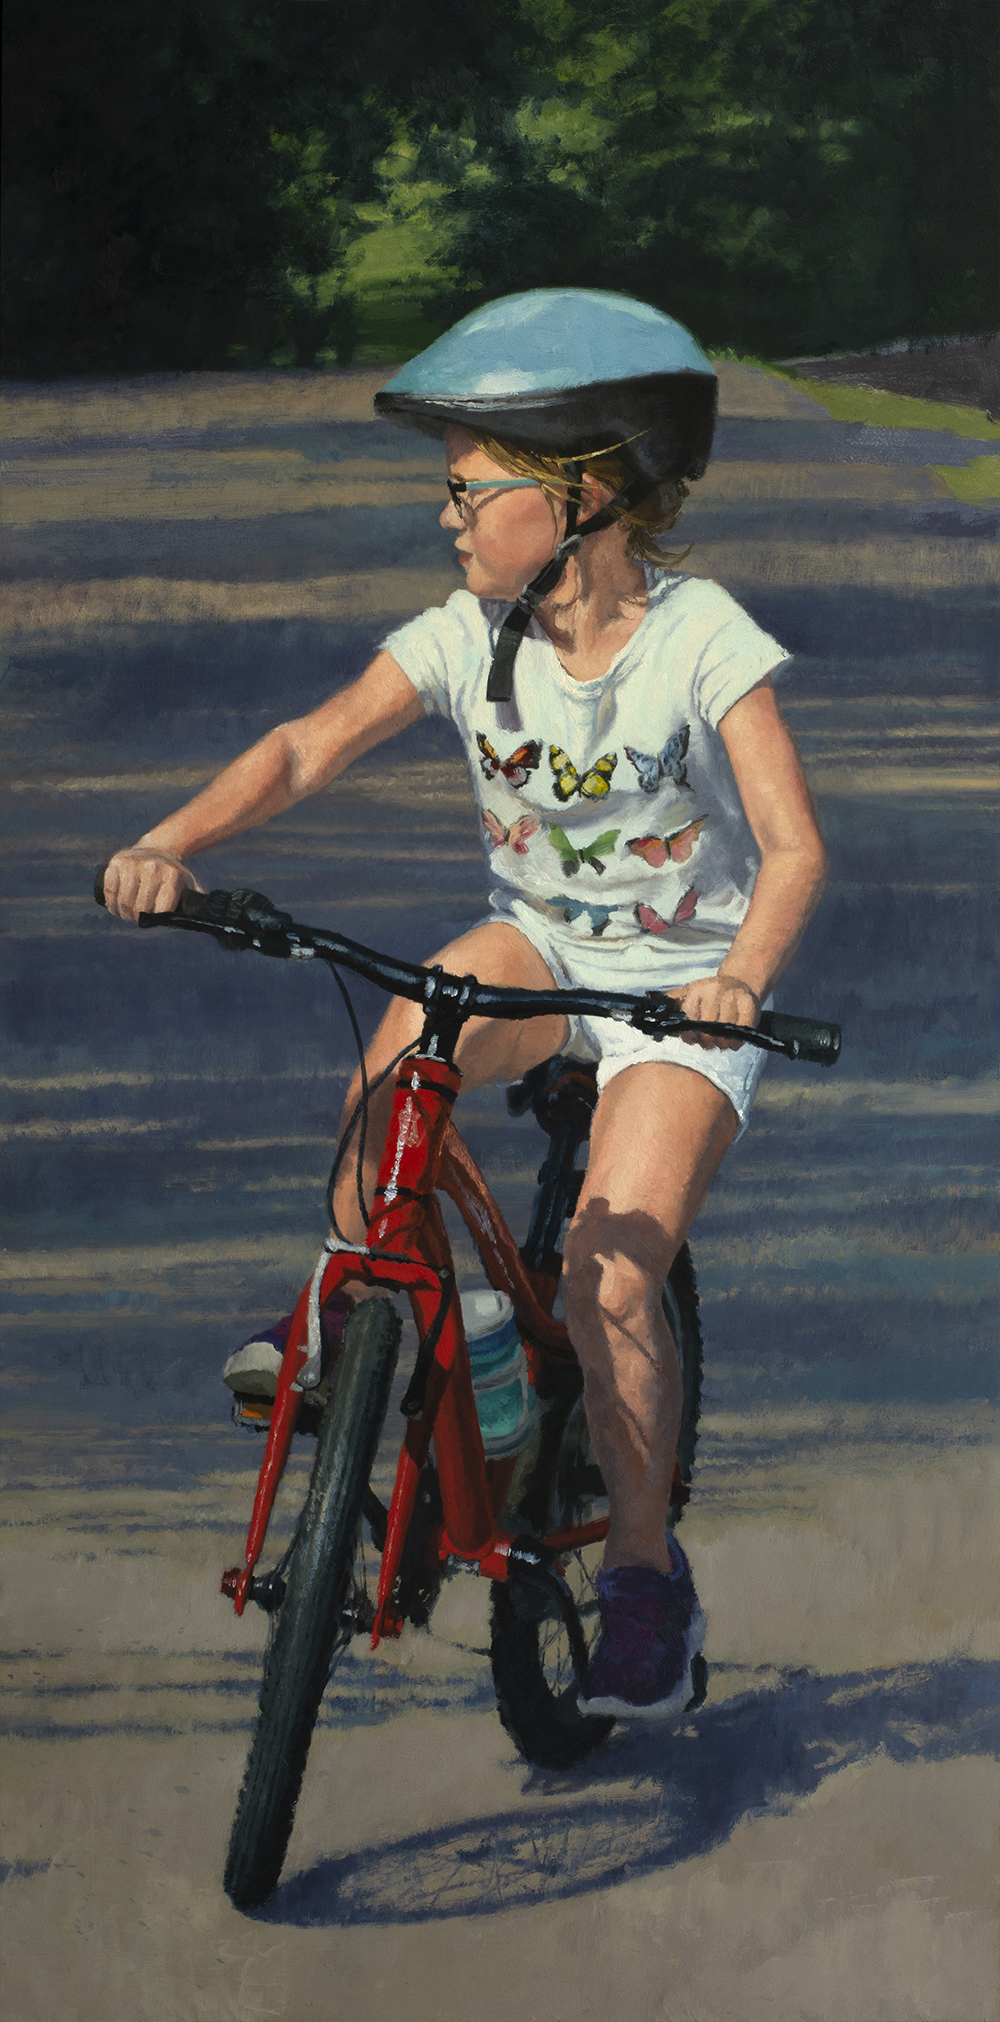 Bike Riding, Panel 3, 36 x 18 inches